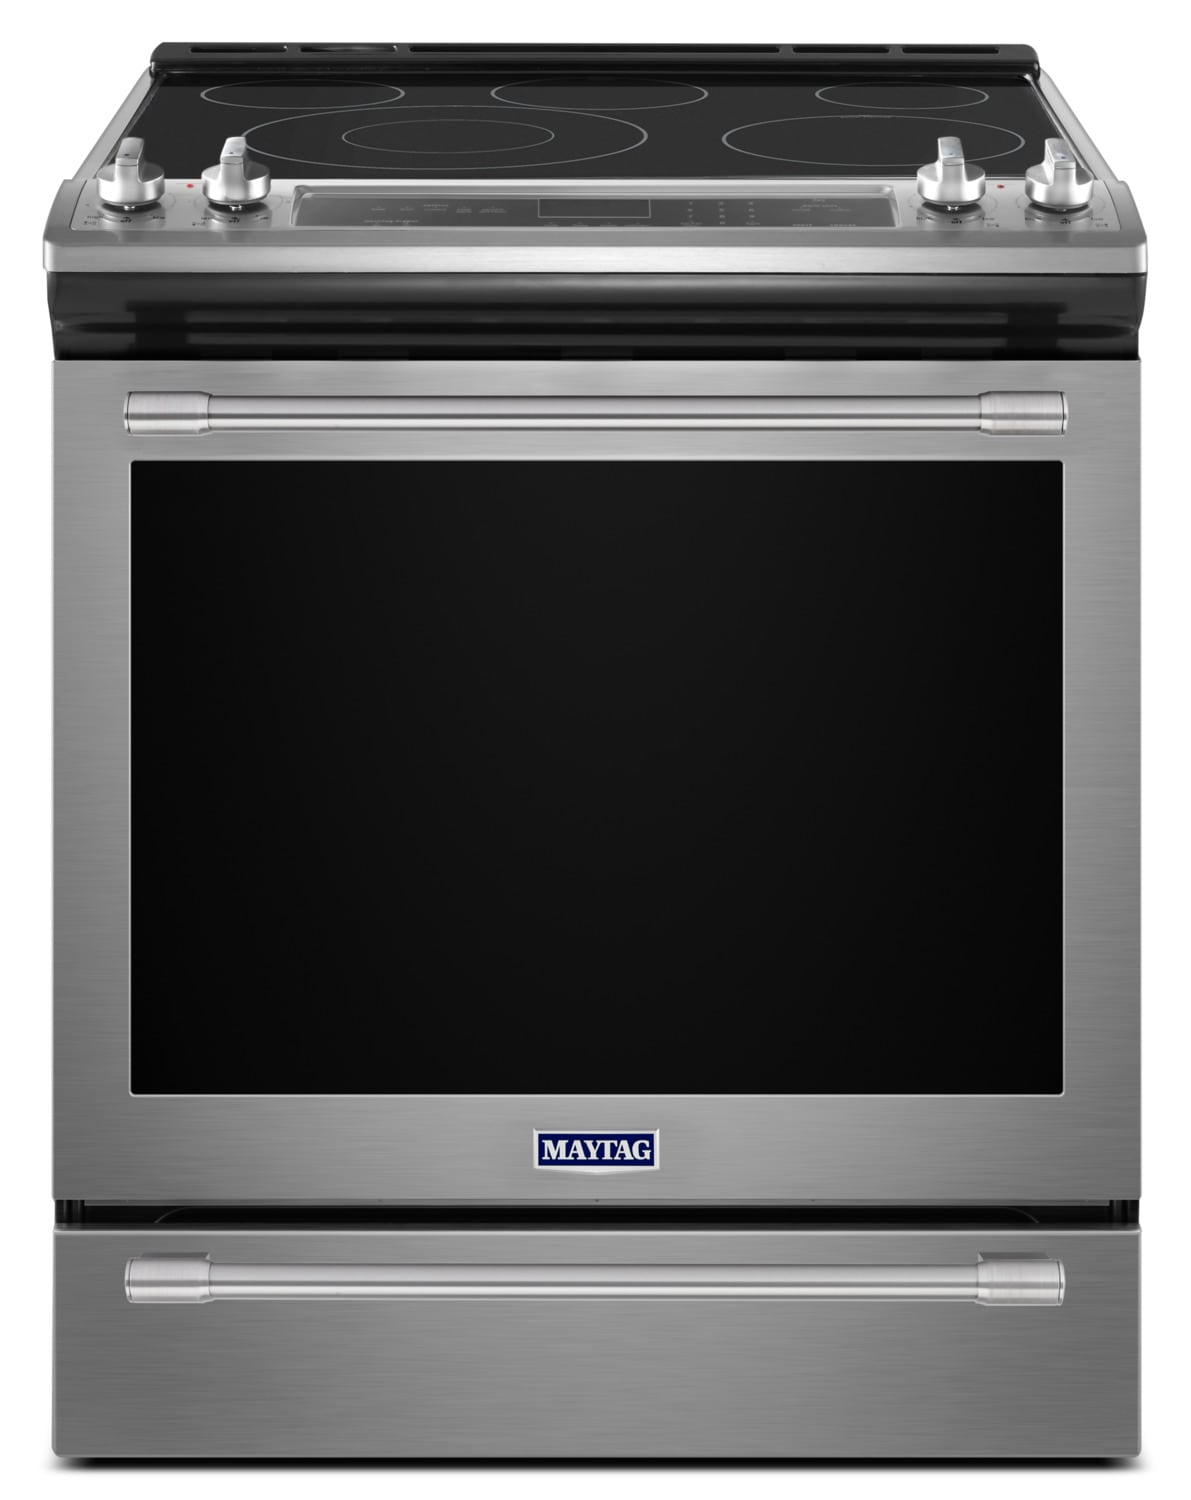 Maytag Stainless Steel Slide-In Electric Convection Range (6.4 Cu. Ft.) - YMES8800FZ